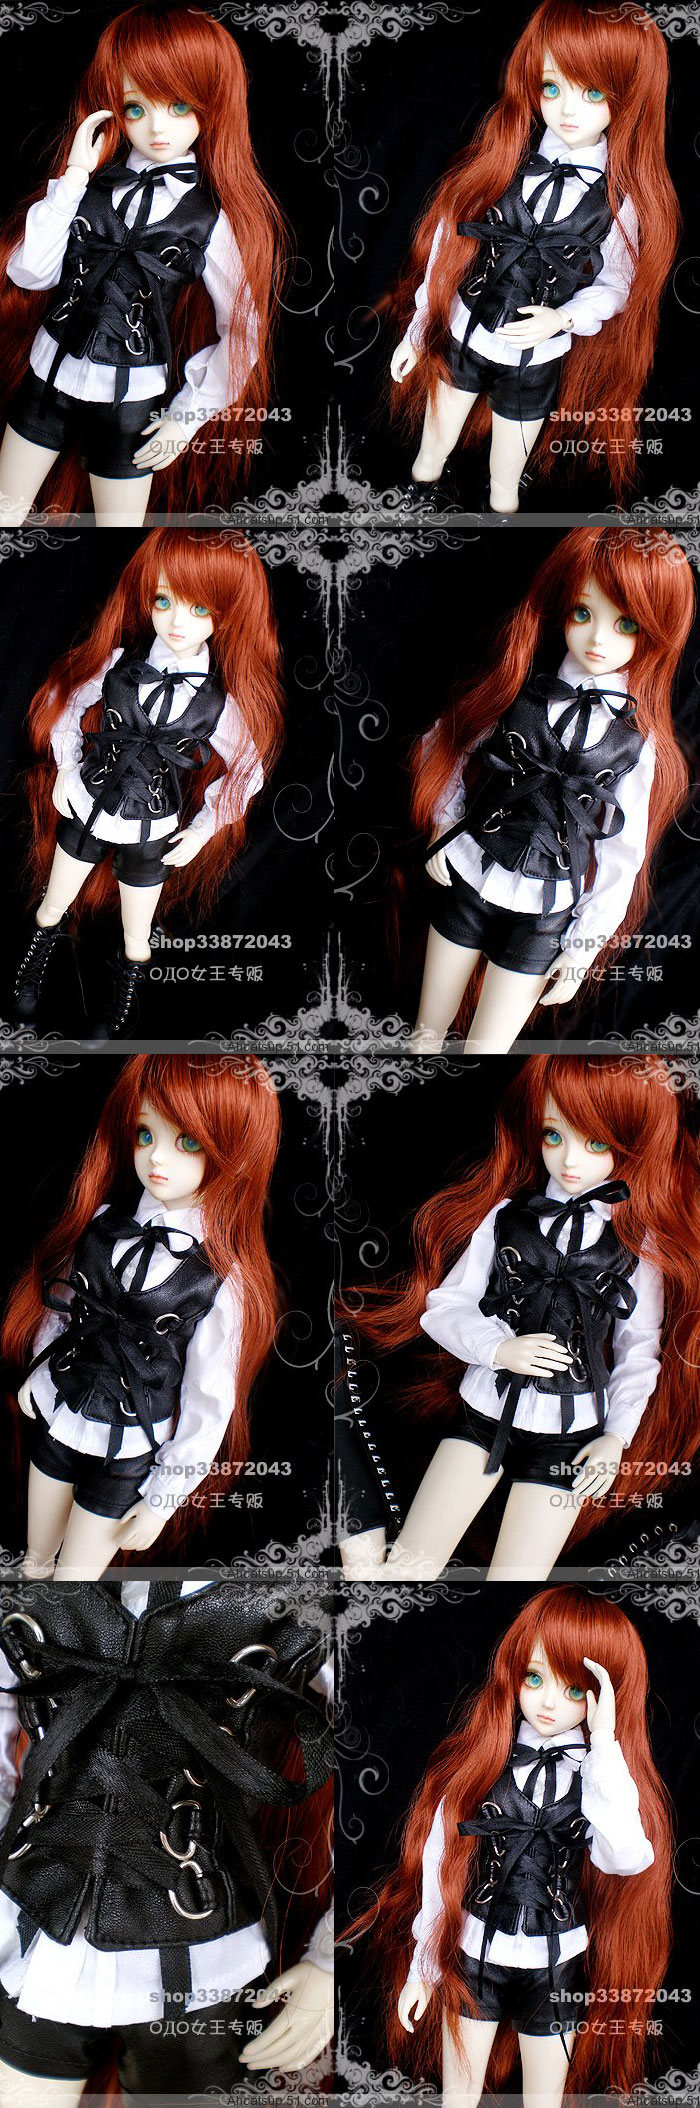 BJD Clothes Leather Costume Set for SD/MSD Ball-jointed Doll